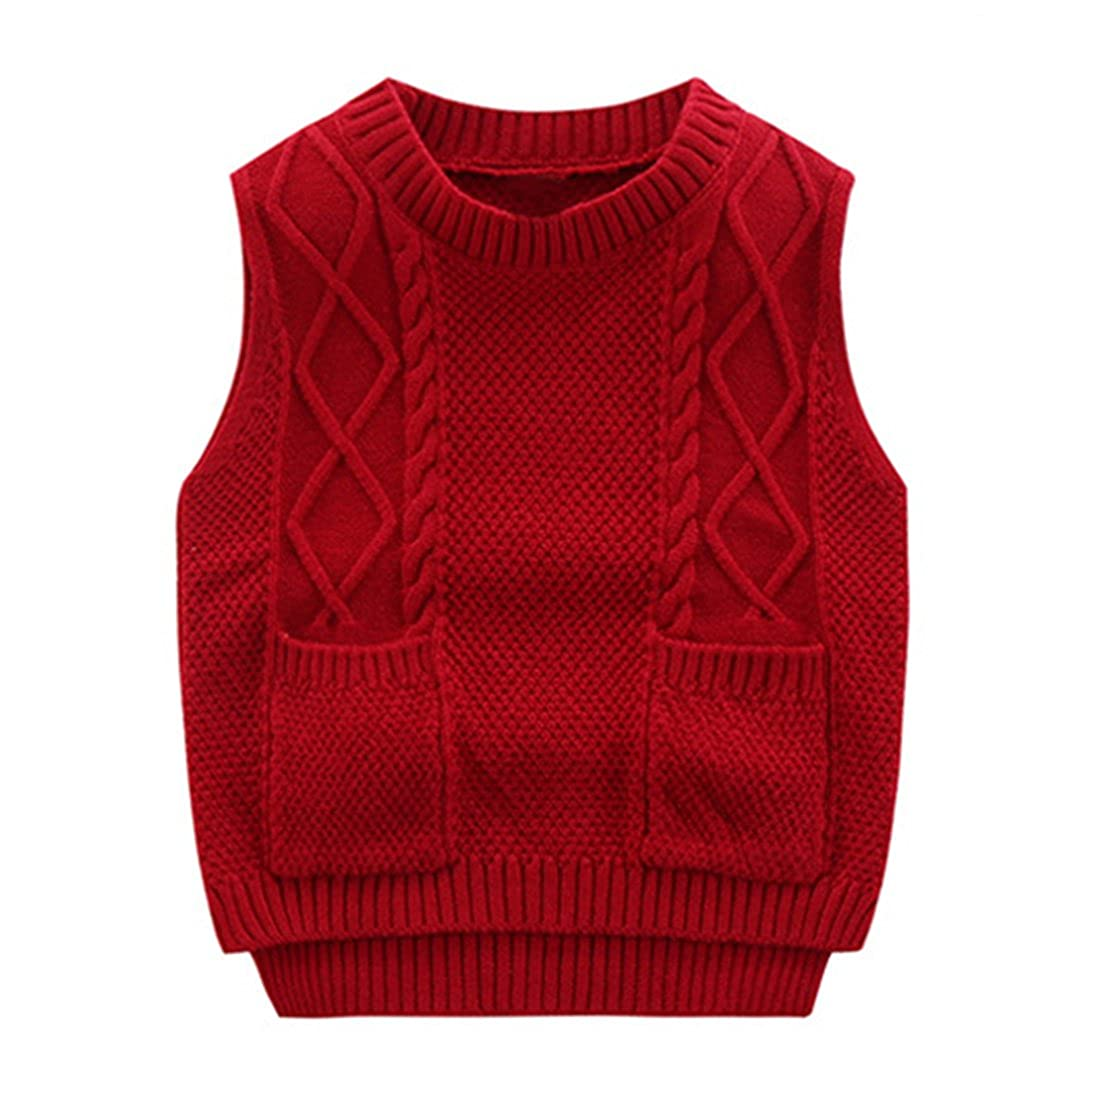 Congcong Unisex Baby Boy's Girls Cable Knit Vest Cotton Pullover Sweater with Pockets